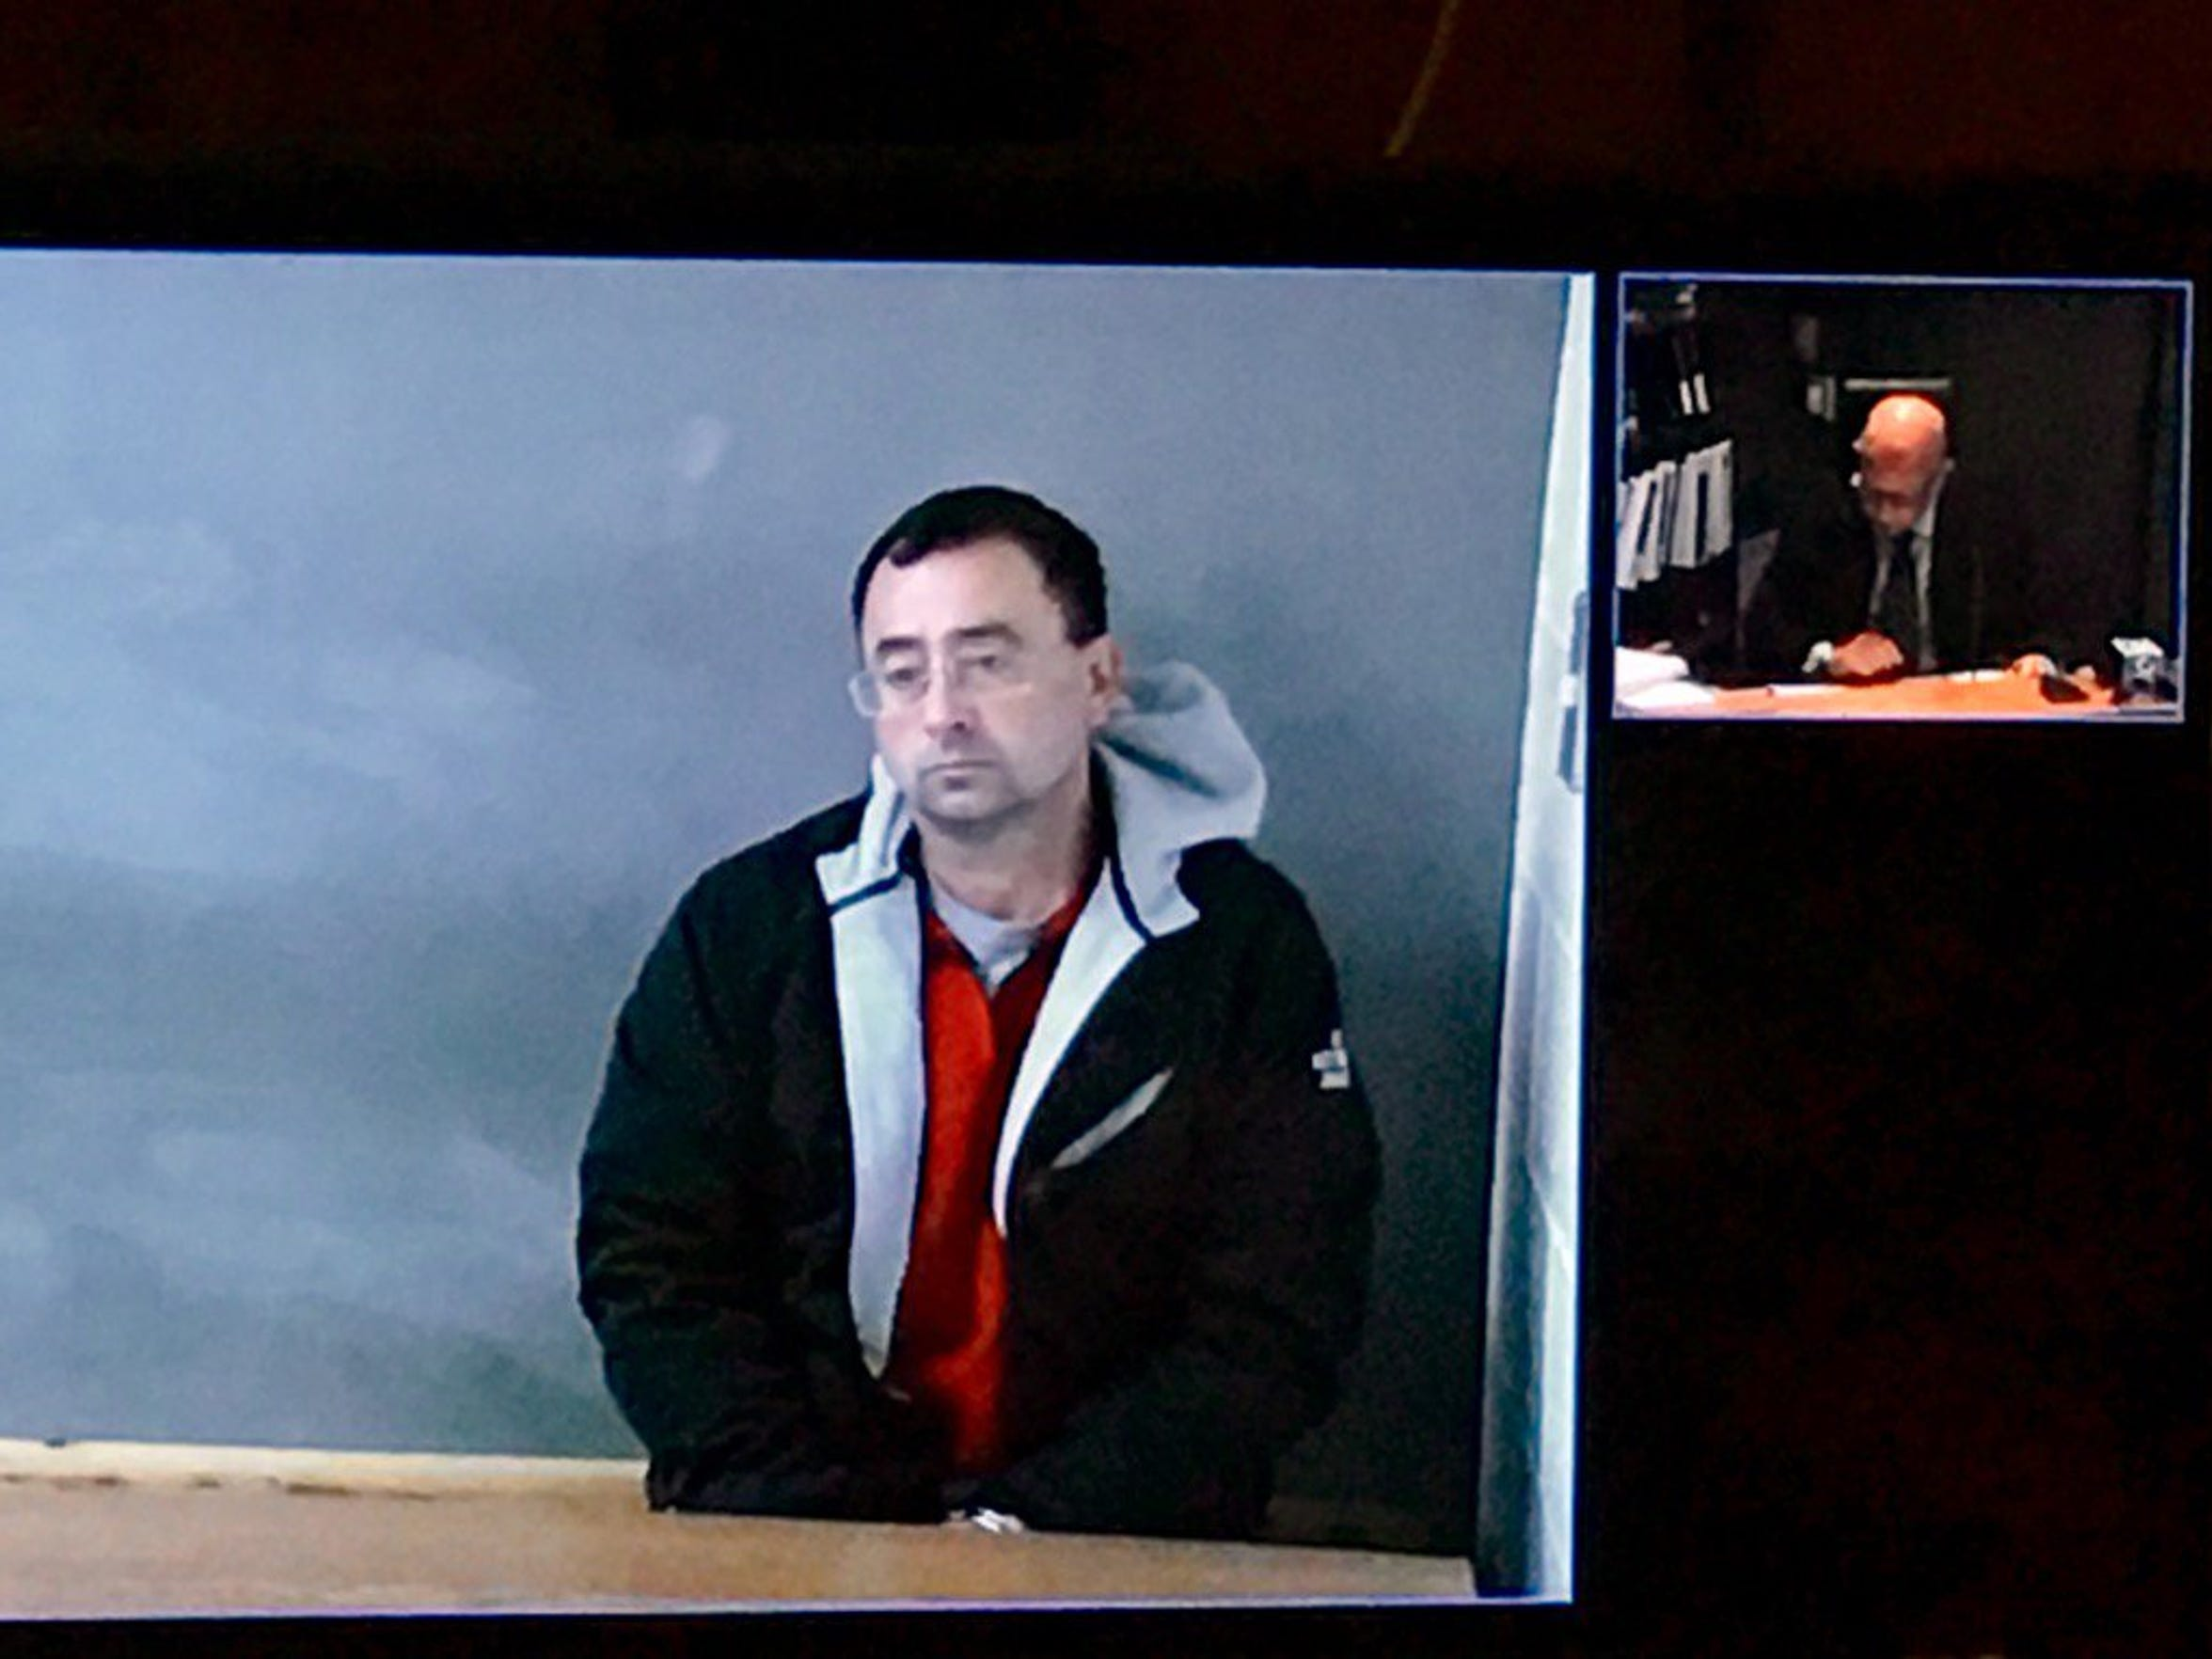 Former Michigan State University doctor Larry Nassar appeared via video teleconference during a hearing on Nov. 22, 2016.